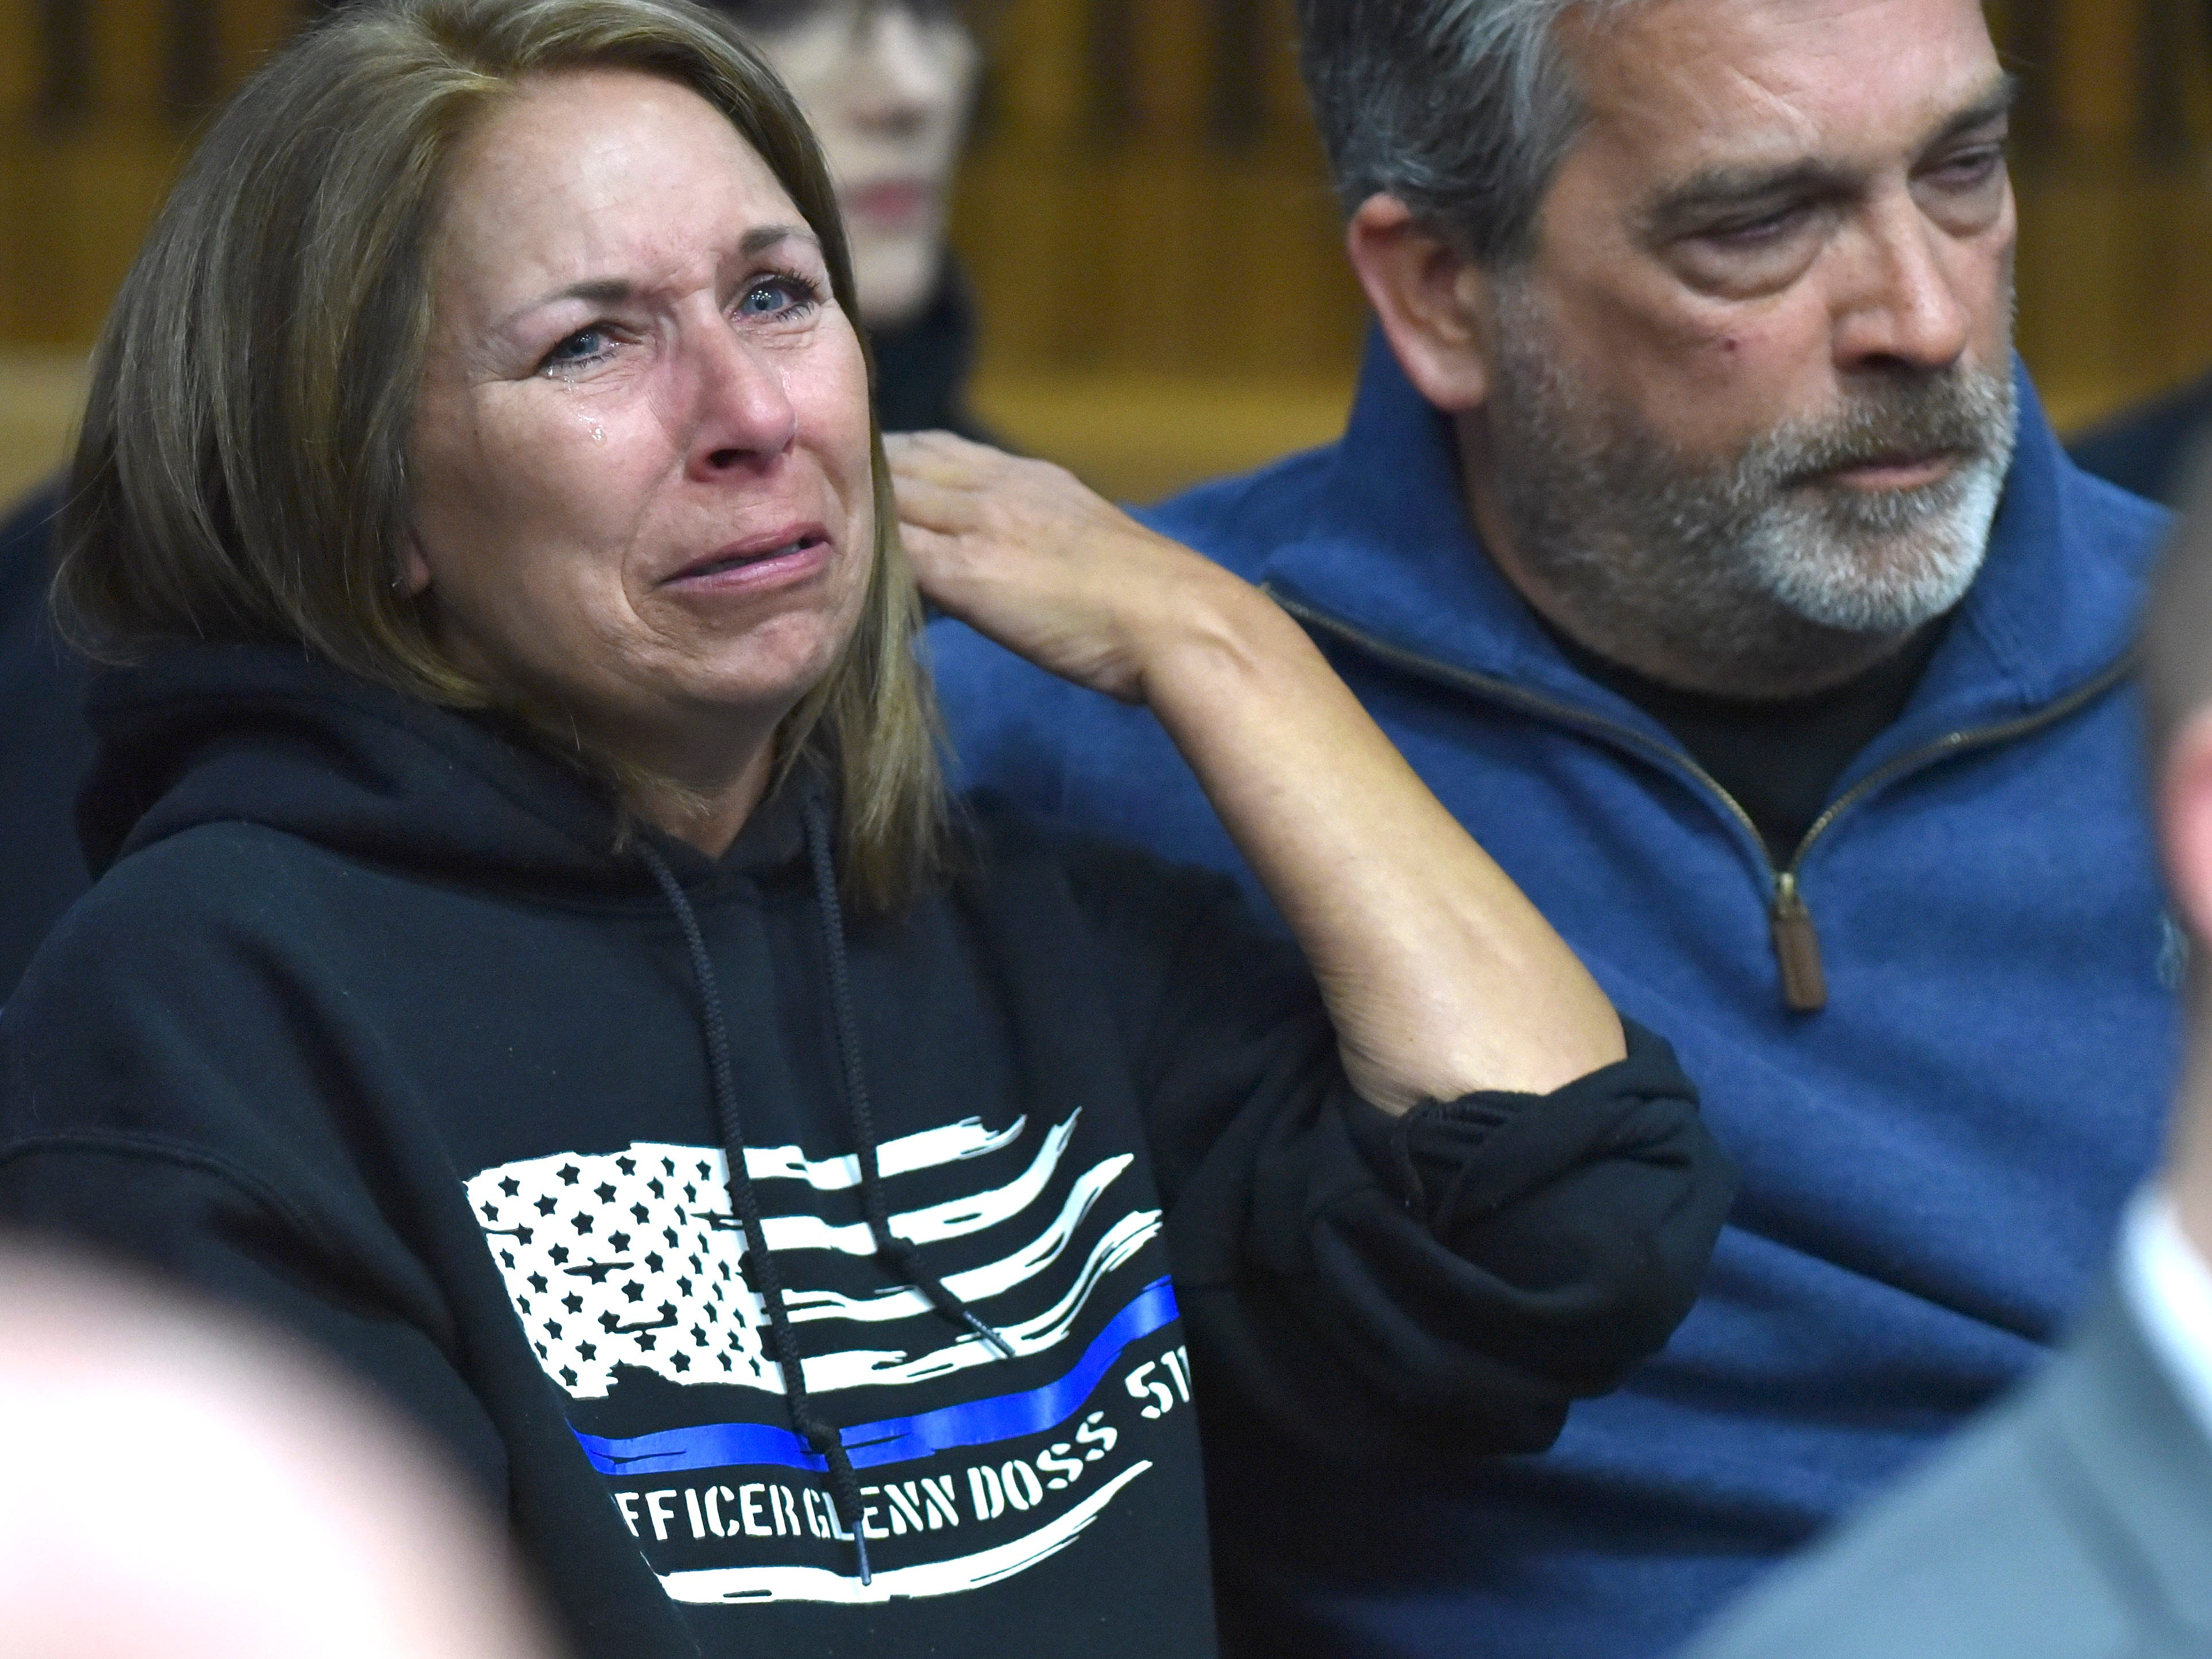 Michelle Crouse, left, wears a Thin Blue Line sweat shirt, memorializing Glenn Doss Jr., as she cries while sitting with her husband, Tim Crouse, as convicted murderer Decharlos Brooks apologizes to the Doss family. The Crouses' daughter  Emily was Doss Jr.'s fiancee.